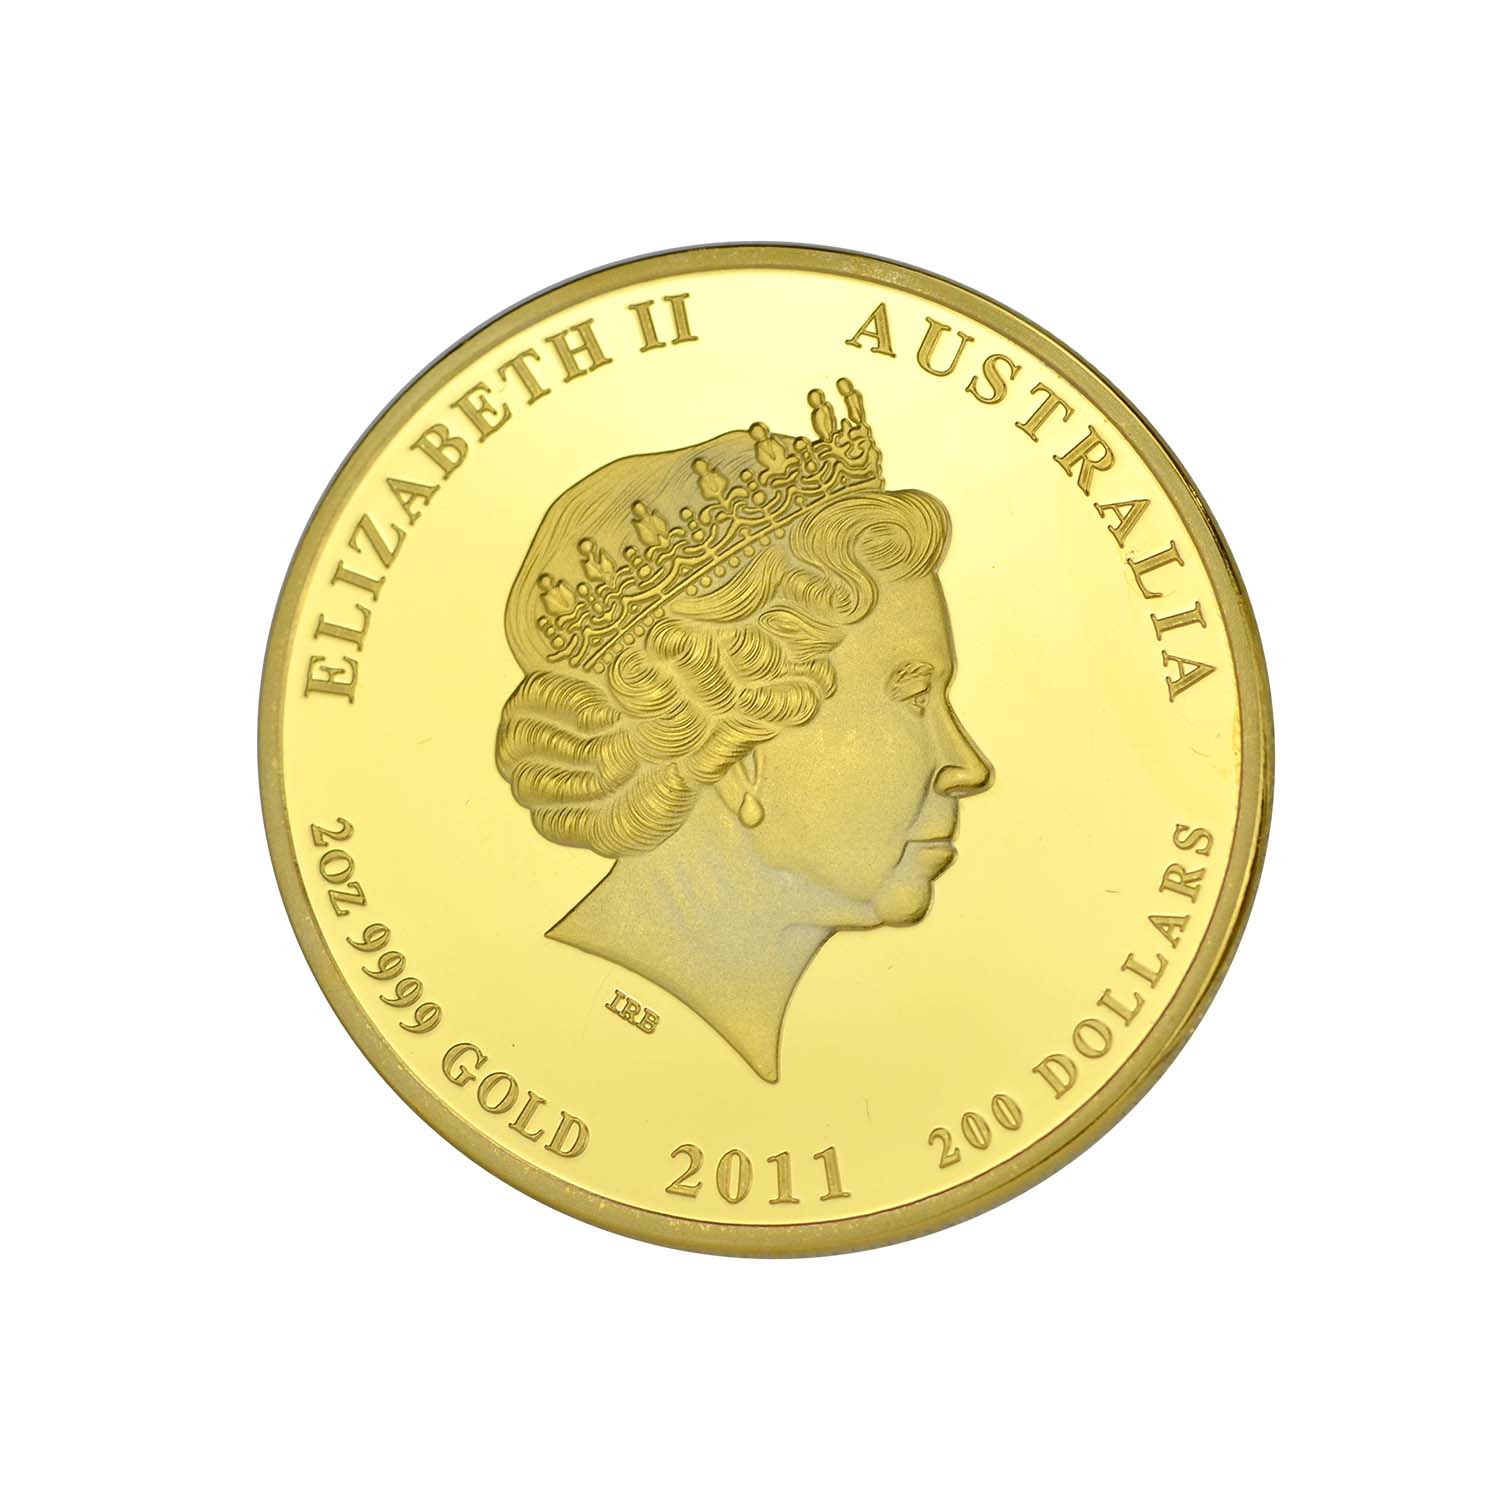 Artigifts Supplier Bulk Cheap High Quality Pound Coin